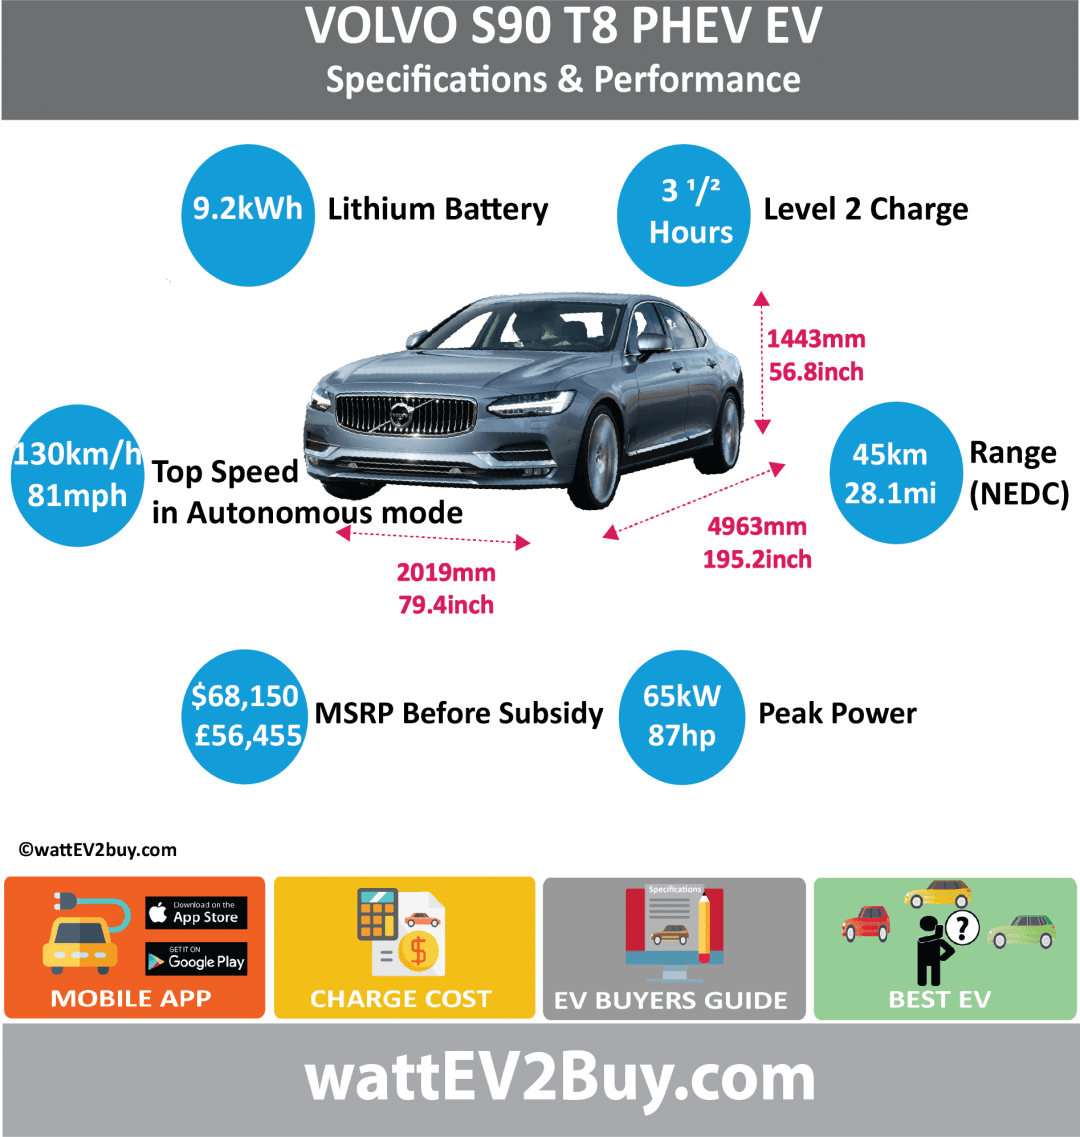 VOLVO S90 T8 PHEV specs wattev2Buy.com 2017 Battery Chemistry Lithium Manganese Oxide Battery Capacity kWh 9.2 Battery Nominal rating kWh 6.7 Voltage V Amps Ah Modules Cells 96 Cell Type Energy Density Wh/kg Weight (kg) 113 Cycles SOC Battery Manufacturer Cooling Battery Warranty - years Battery Warranty - km Battery Electric Range - NEDC Mi 28.1 Battery Electric Range - NEDC km 45 Battery Electric Range - EPA Mi Battery Electric Range - EPA km Electric Top Speed - mph Electric Top Speed - km/h Acceleration 0 - 62mph sec 4.7 Onboard Charger kW LV 1 Charge kW LV 1 Charge Time (Hours) 6 LV 2 Charge kW LV 2 Charge Time (Hours) 2.5 LV 3 CCS/Combo kW LV 3 Charge Time (min to 80%) Charge Connector MPGe Combined - miles 26 MPGe Combined - km MPGe City - miles 24 MPGe City - km MPGe Highway - miles 34 MPGe Highway - km Electric Motor - Front Max Power - hp Max Power - kW Max Torque - lb.ft Max Torque - N.m Electric Motor - Rear 1 Max Power - hp 87 Max Power - kW 65 Max Torque - lb.ft 177 Max Torque - N.m 240 Electric Motor Output kW Electric Motor Output hp Transmission Drivetrain Energy Consumption kWh/100miles Utility Factor MPGe Electric Only - miles GB MSRP (before incentives & destination) £56,455.00 US MSRP (before incentives & destination) $68,150.00 Combustion 2.0L 4 cyinder Extended Range - mile Extended Range - km ICE Max Power - hp 320 ICE Max Power - kW 235 ICE Max Torque - lb.ft 295 ICE Max Torque - N.m 400 ICE Top speed - mph 156.3 ICE Top speed - km/h 250 ICE Acceleration 0 - 50km/h sec ICE Acceleration 0 - 62mph sec 4.7 ICE MPGe Combined - miles ICE MPGe Combined - km ICE MPGe City - miles ICE MPGe City - km ICE MPGe Highway - miles ICE MPGe Highway - km ICE Transmission ICE Fuel Consumption l/100km 2.1 ICE Emission Rating ICE Emissions CO2/mi grams ICE Emissions CO2/km grams Total System Total Max Power - hp 407 Total Max Power - kW 300 Total Max Torque - lb.ft Total Max Torque - N.m 400 Combined Fuel Consumption l/100km 1.9 Combined Emissions CO2/km grams 